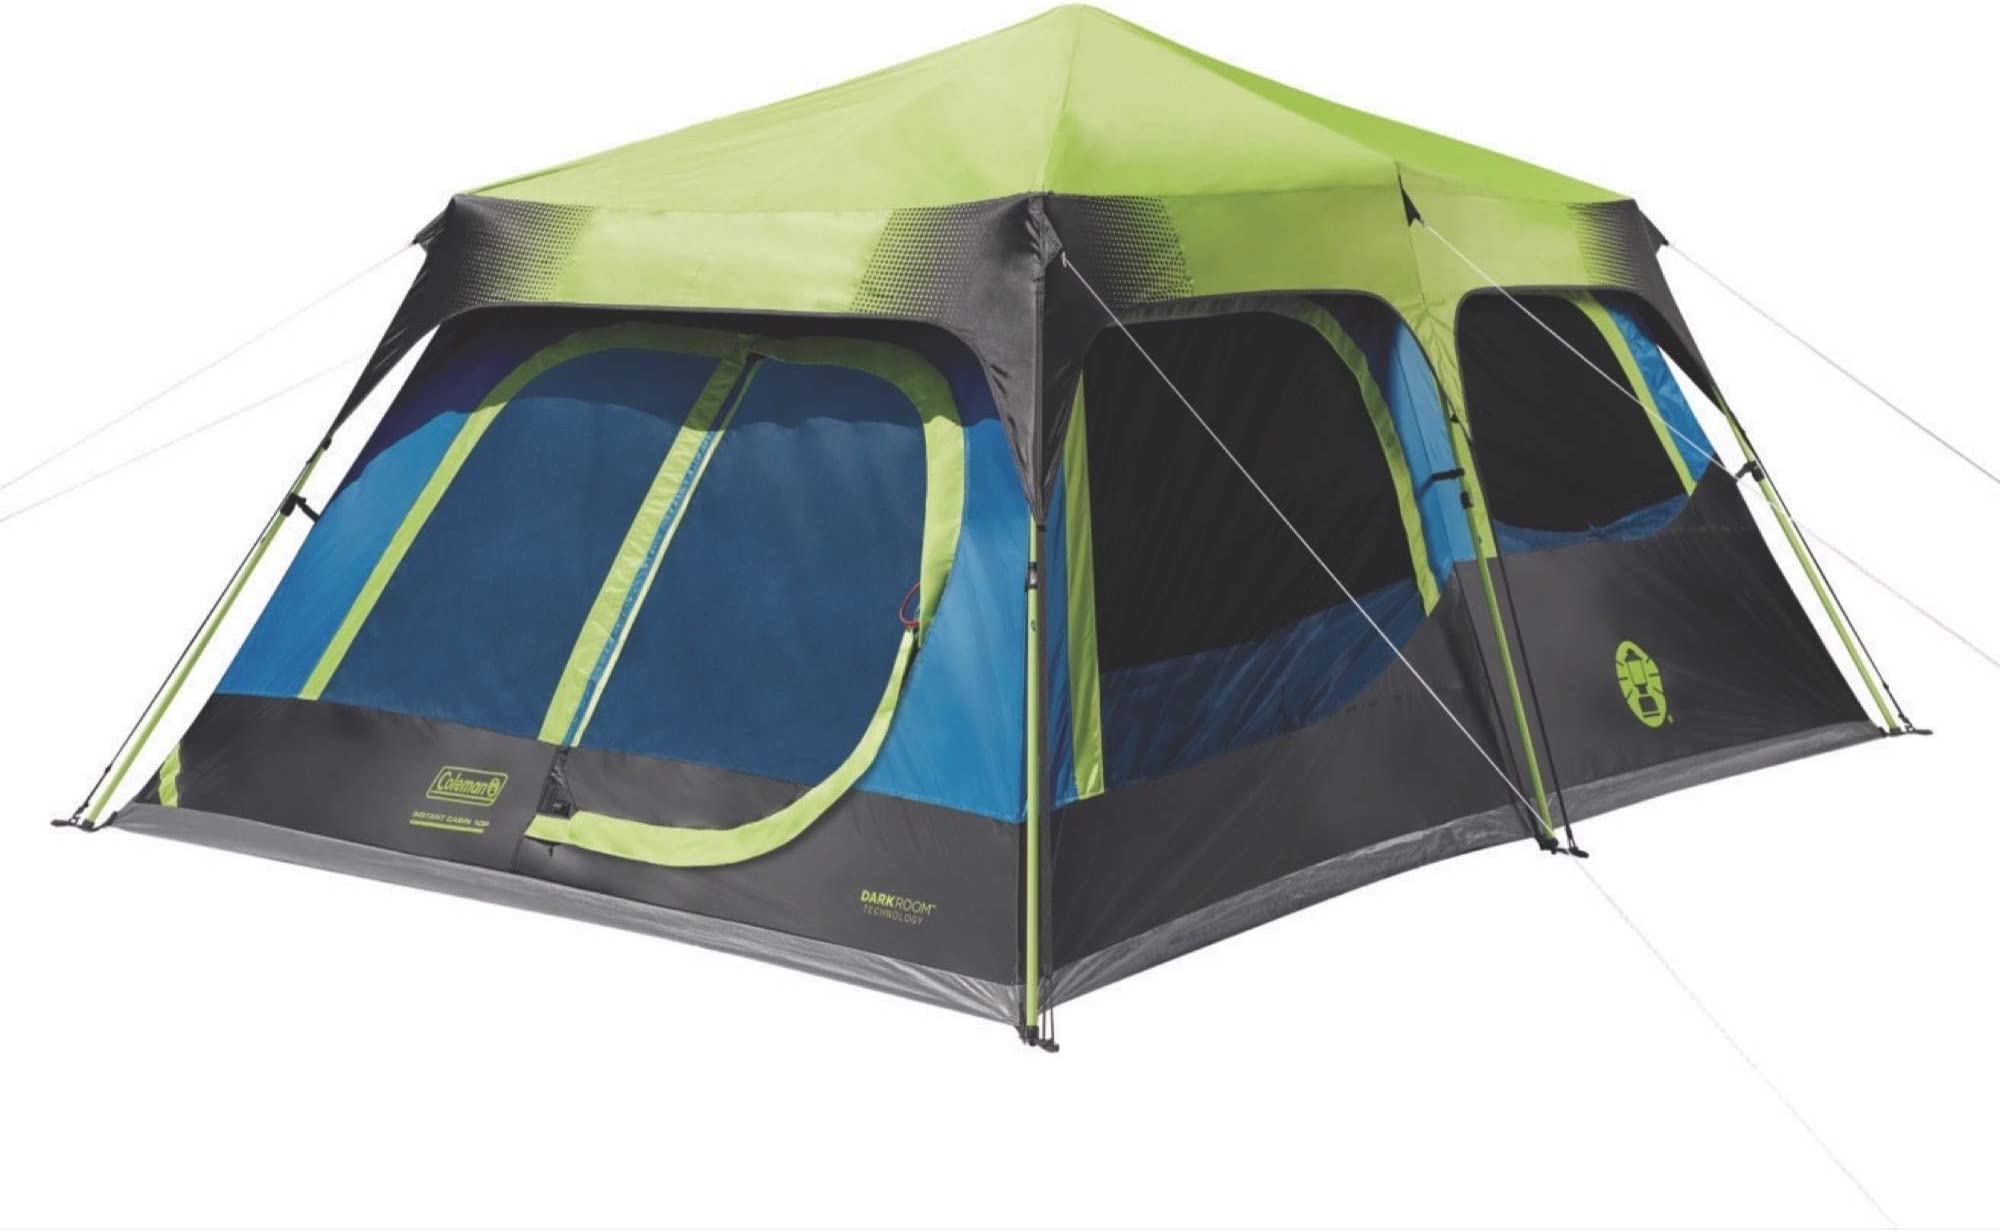 Coleman Cabin Tent with Instant Setup | Cabin Tent for C&ing Sets Up in 60 Seconds  sc 1 st  Amazon.com & Camping Tents | Amazon.com